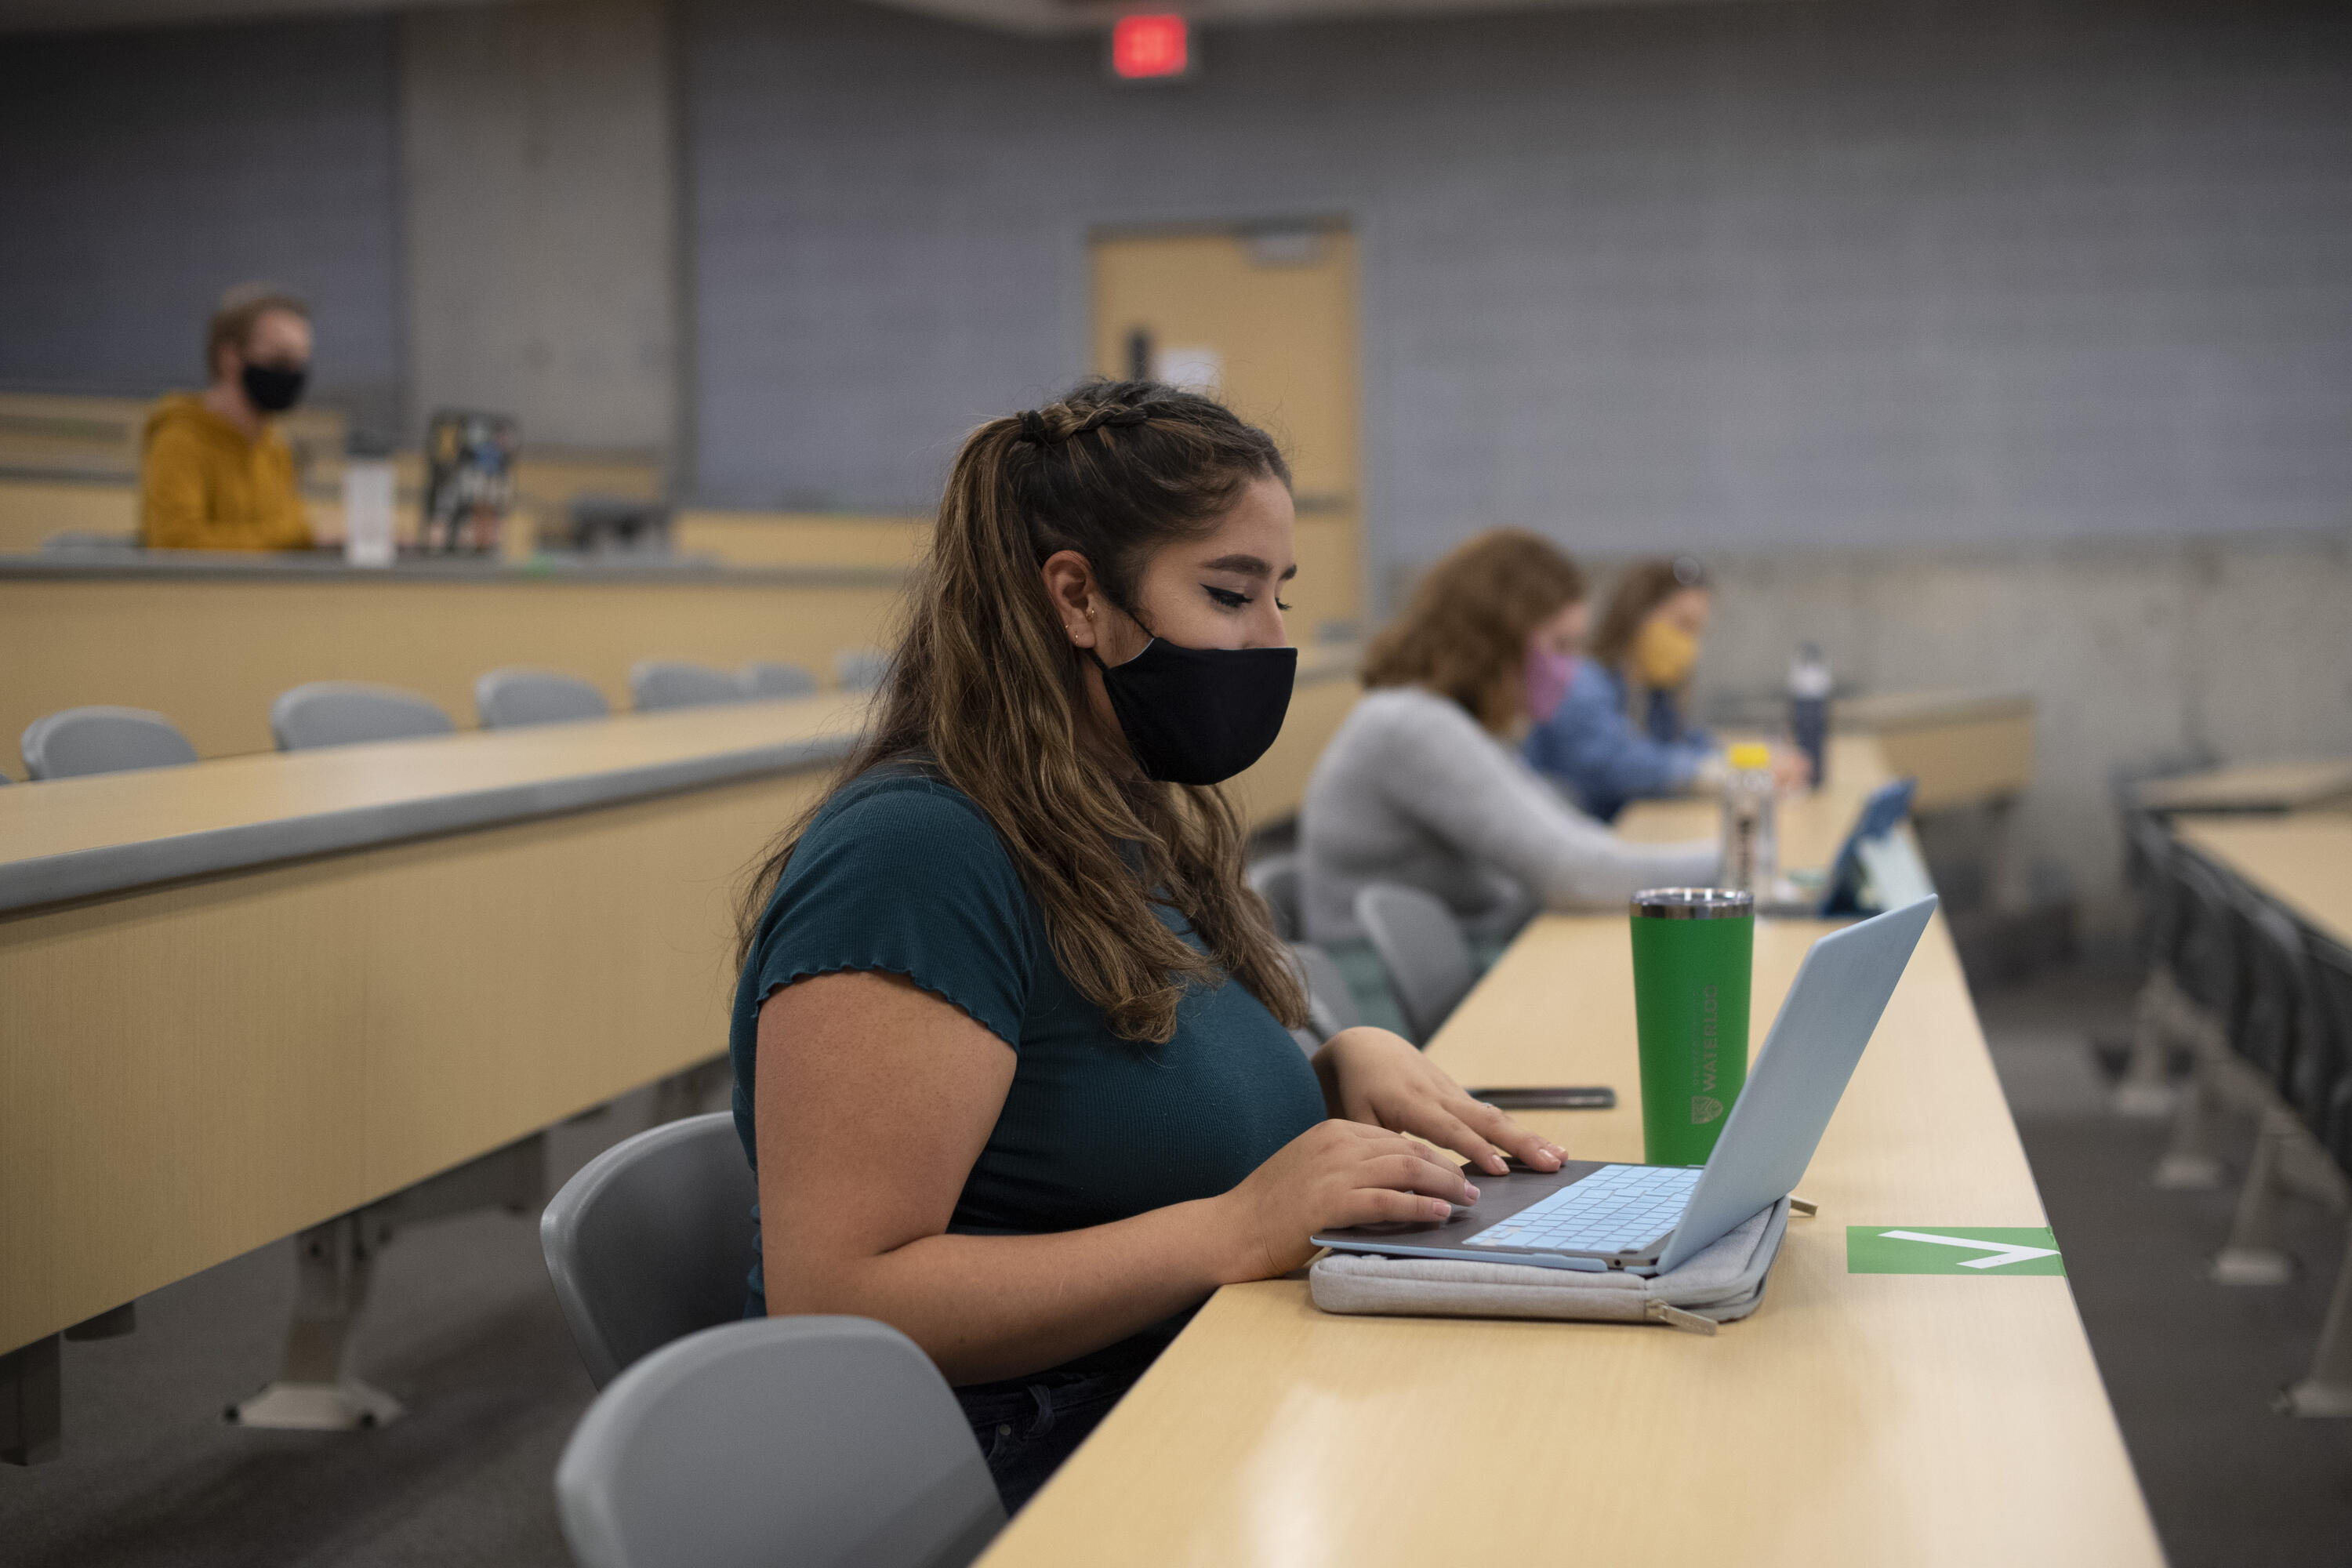 Masked student in classroom